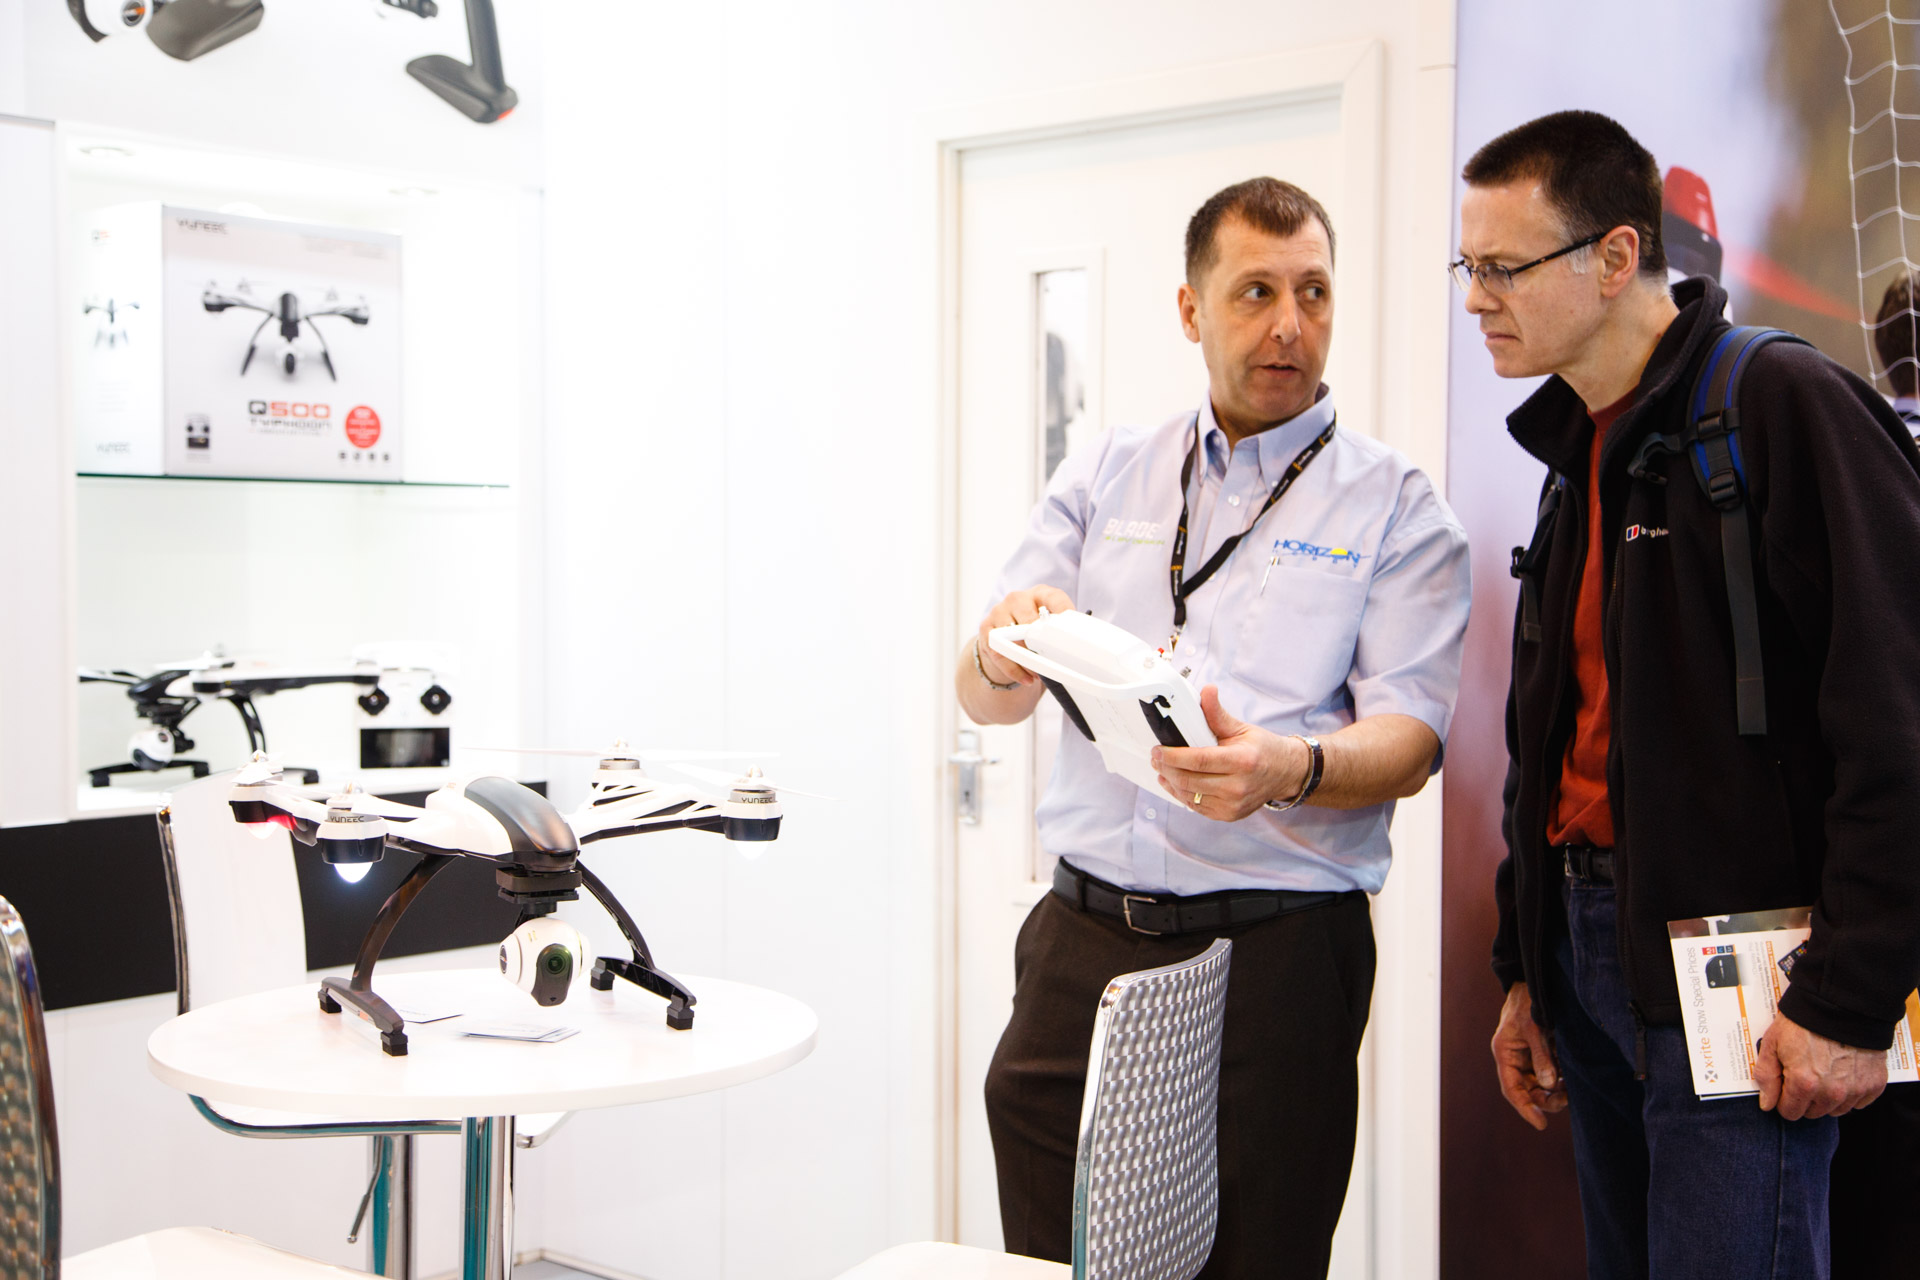 The increased popularity in drones was reflected at The Photography Show by a number of stands.